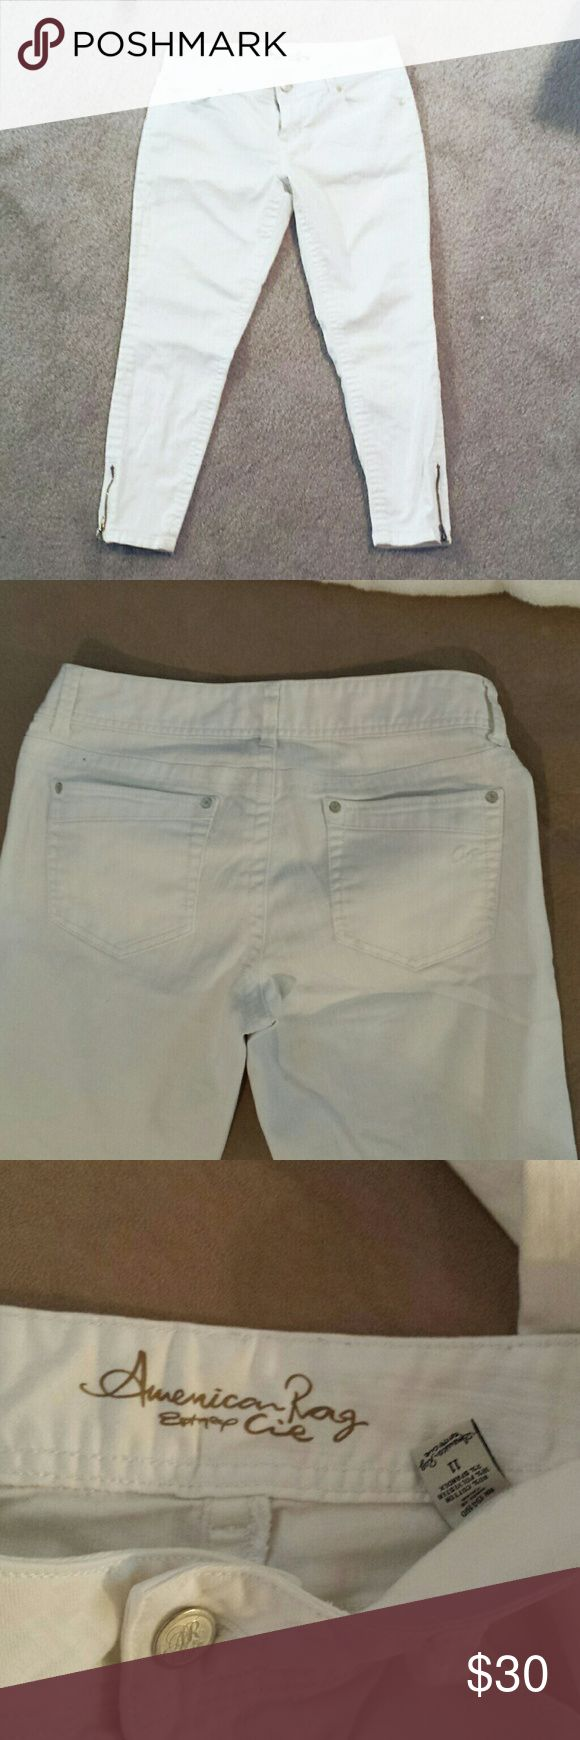 NWOT American Rag CIE White Skinny Jeans Perfect condition, just didn't fit well.  Easily dressed up or down!  Waist laying flat measures 16.5in Total Length is 35in with an inseam of 26in Ankle opening zipped is 5.5in  #NWOT #americanrag #white #jeans #whitejeans #skinny #skinnyjeans #spring #summer #fall #winter #anytime #goeswitheverything #neutral #zipper #ankle American Rag Jeans Skinny